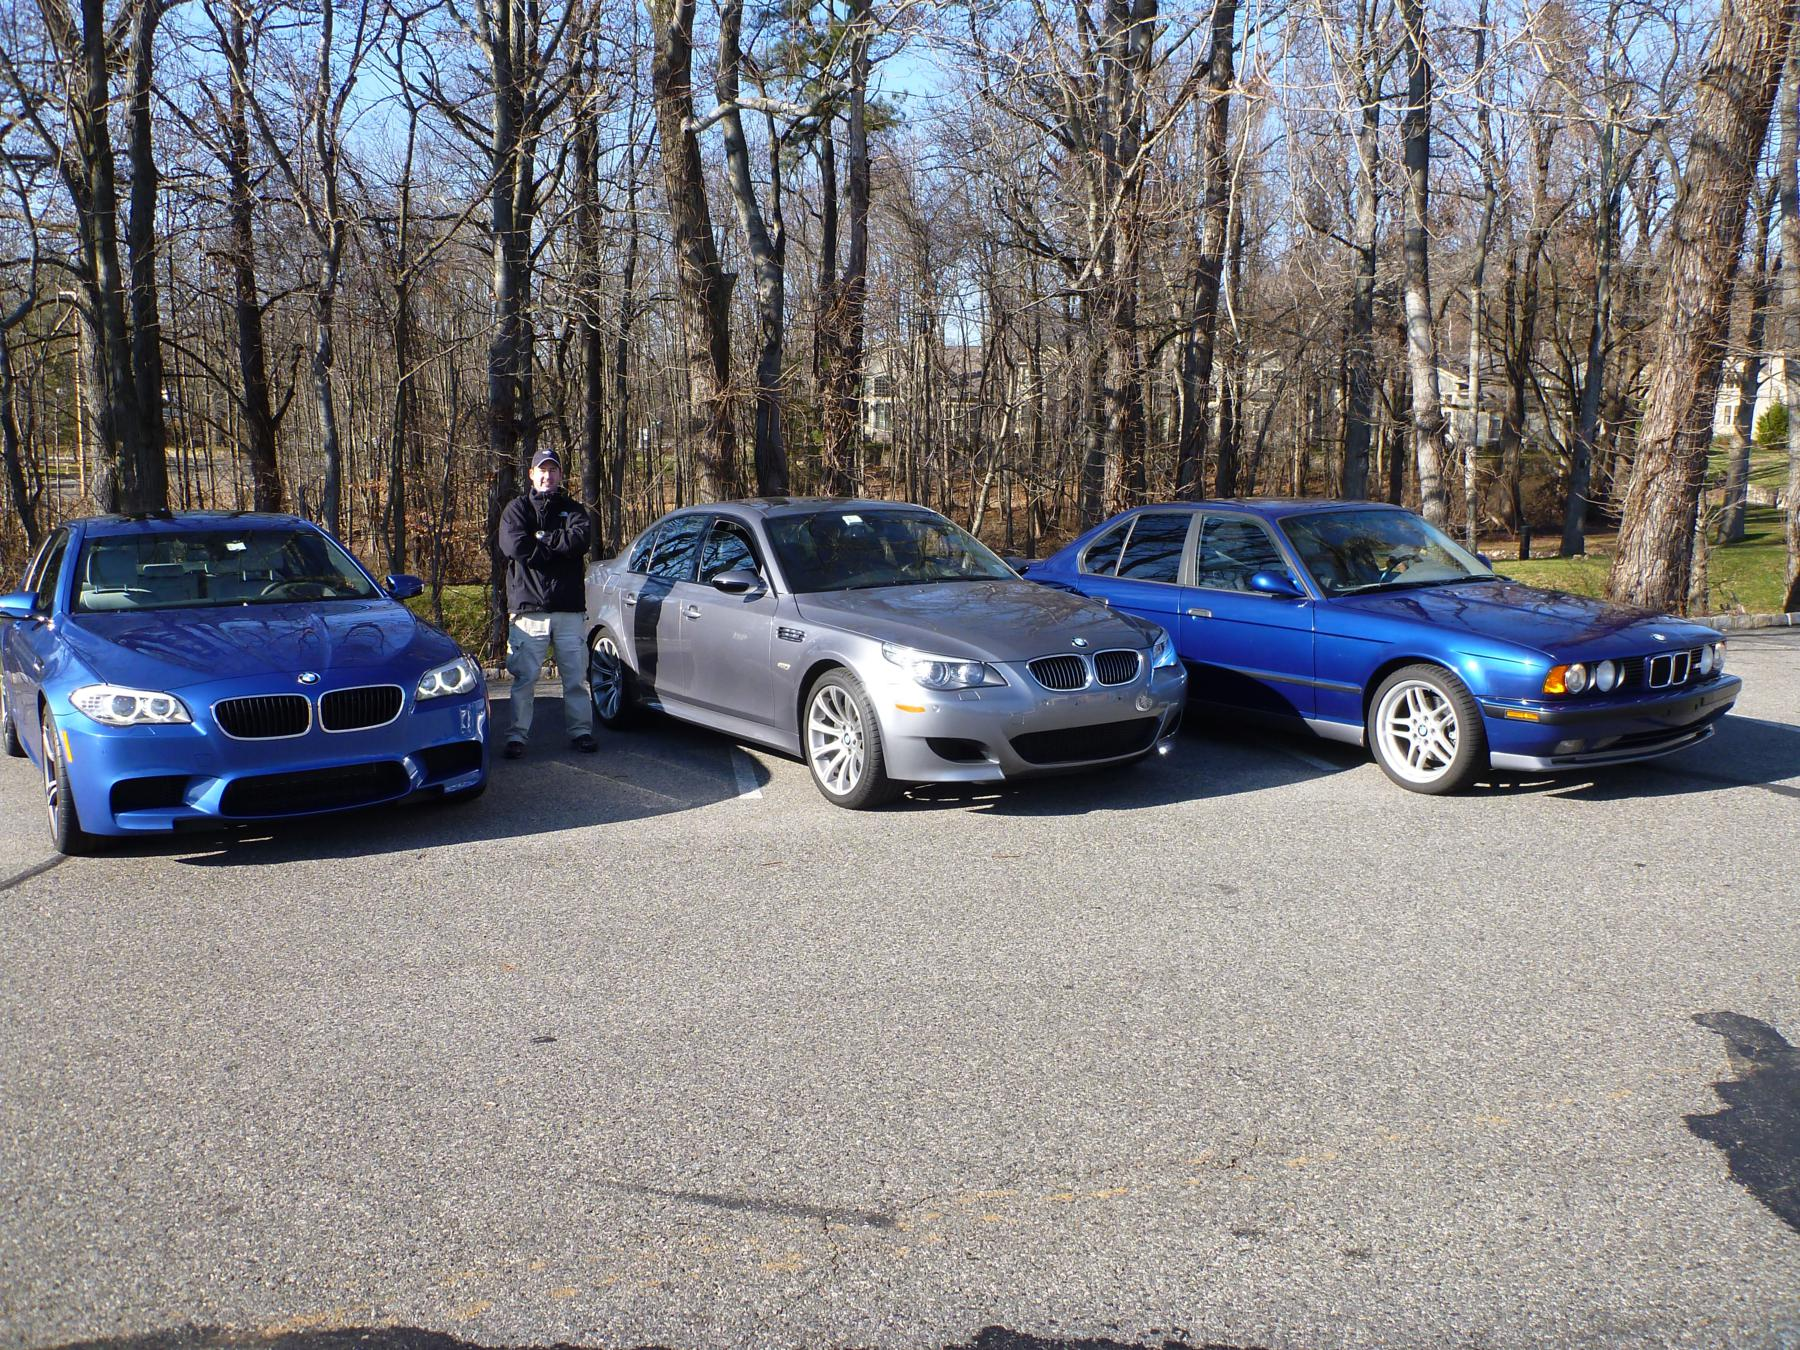 F10 M5 at NJ Cars and Coffee - 12/18/2011-12-18-2011-052_1800x1350.jpg